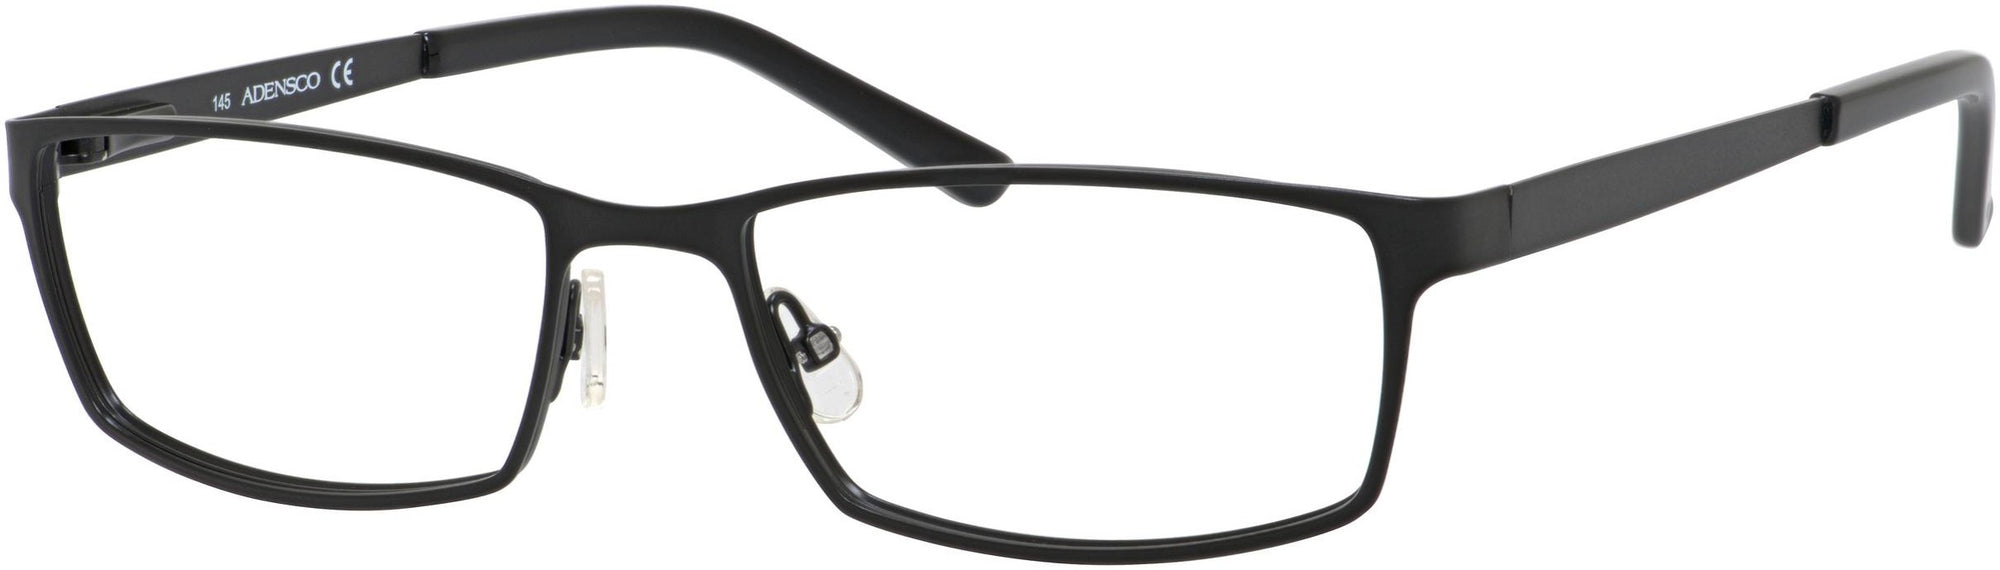 Adensco AD 111 Rectangular Eyeglasses 0003-0003  Semi Matte Black (00 Demo Lens)